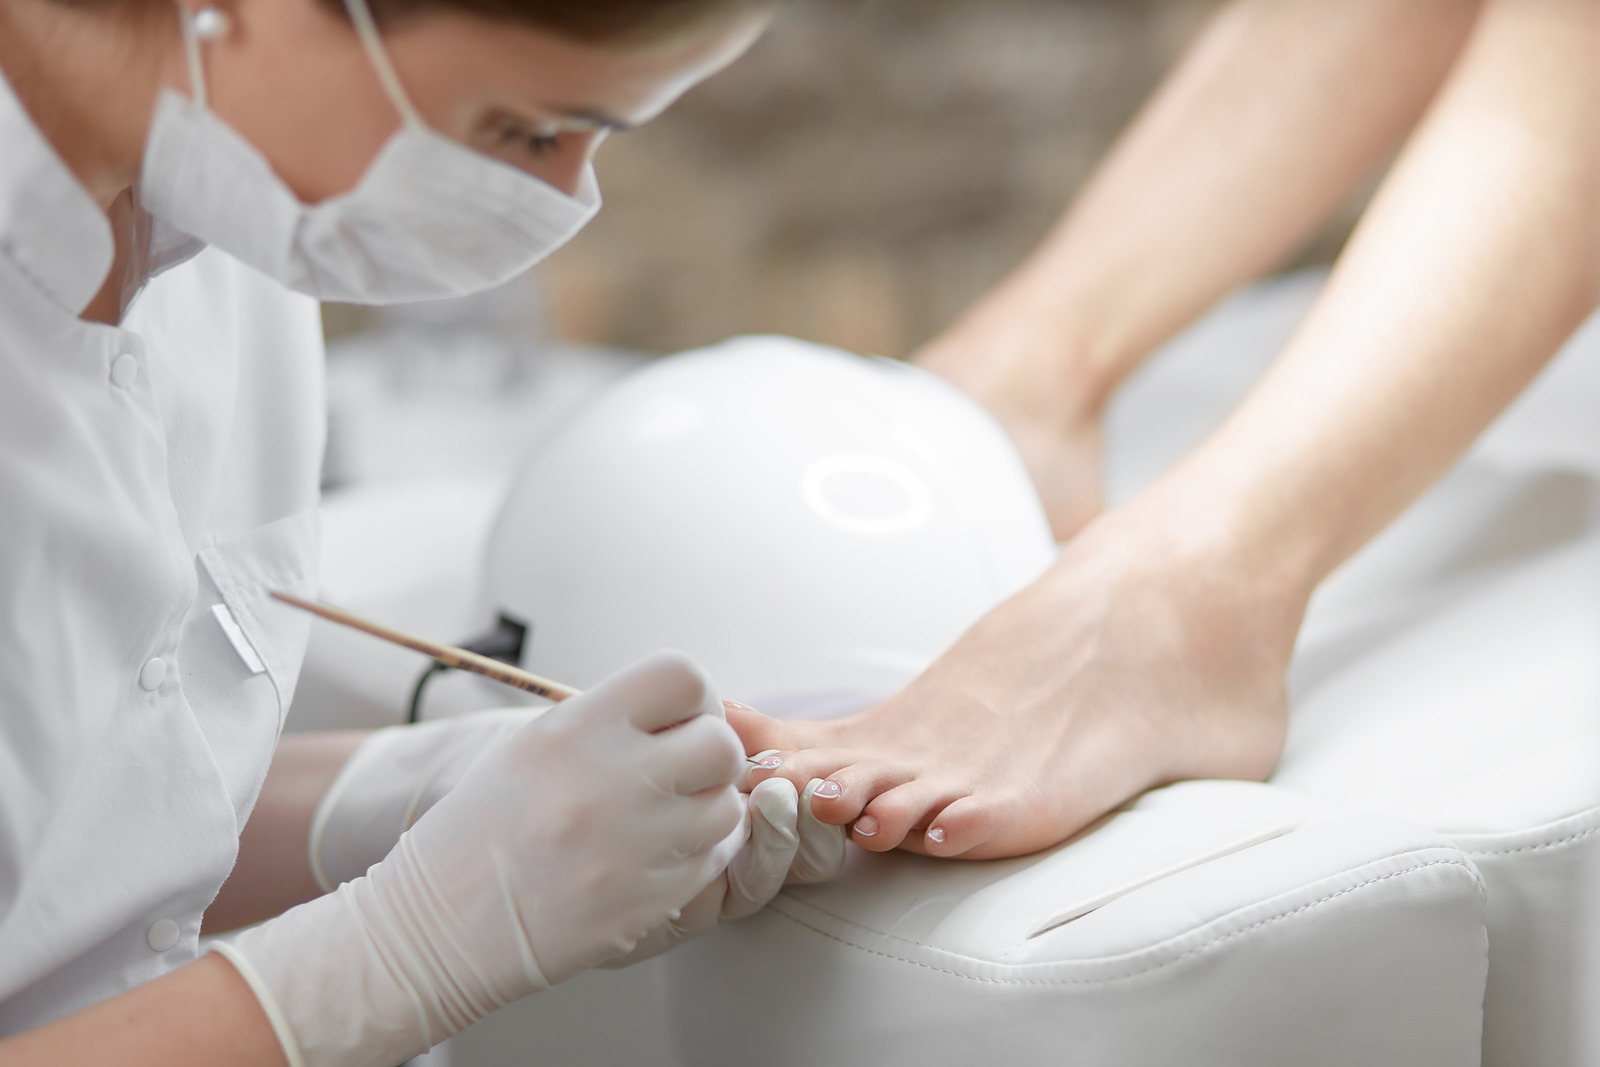 Nail Salons and Foot Treatments during COVID-19 | Medical Pedicure